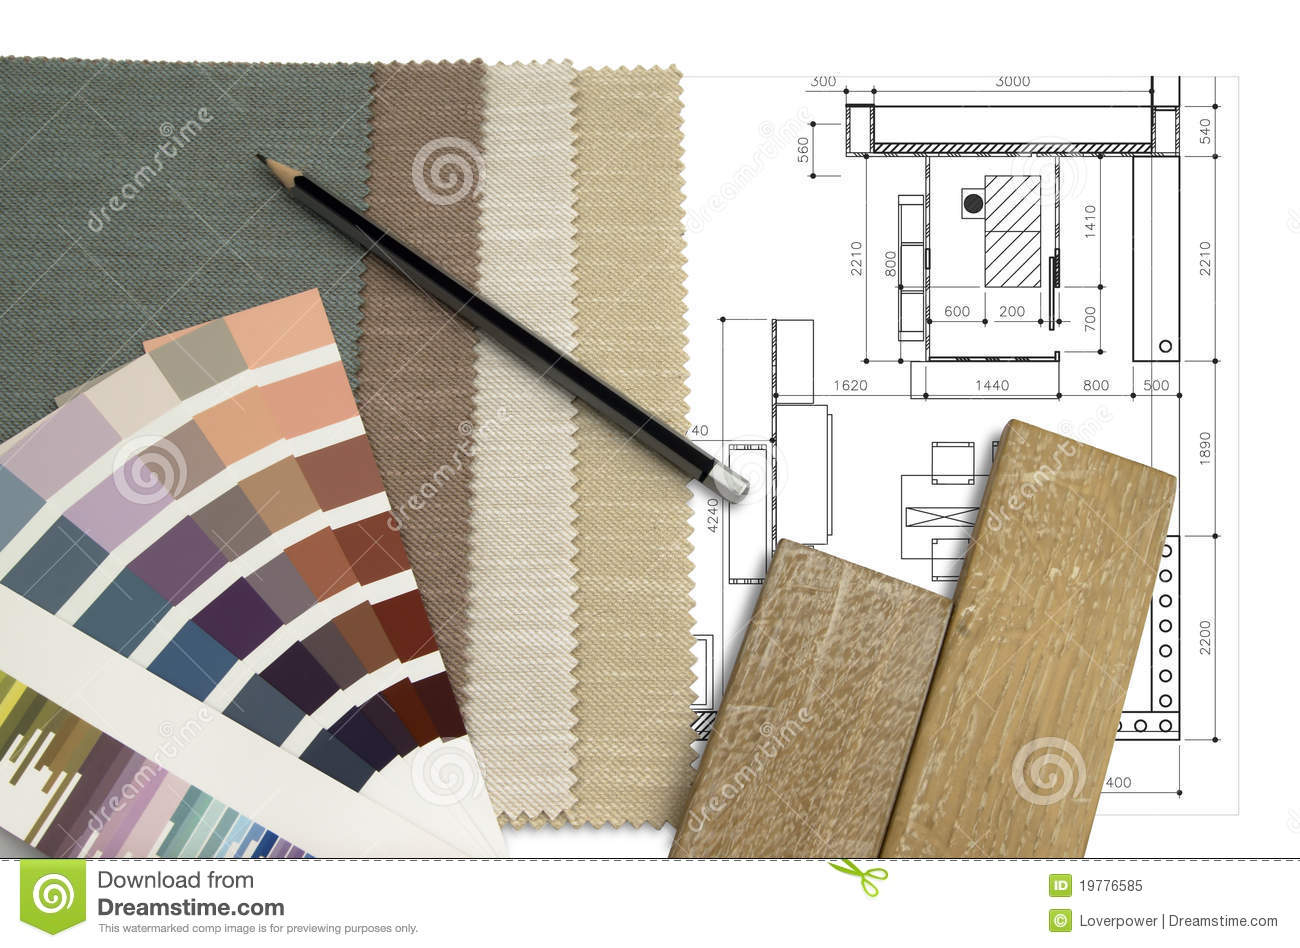 Interior Designers At Work worktable interior design royalty free stock photo - image: 19776585